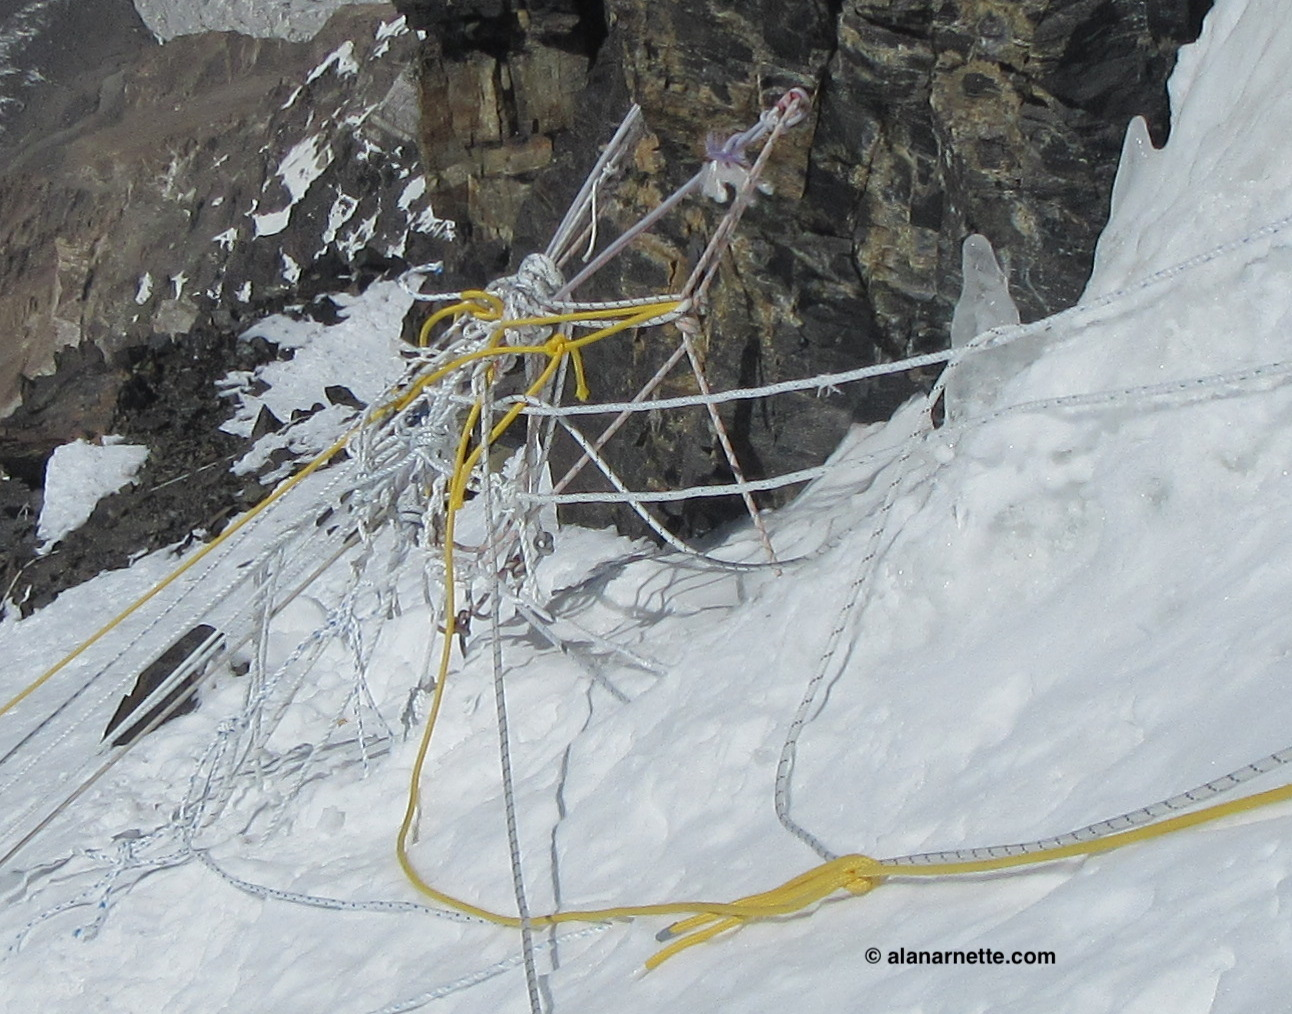 K2 2018 Summer Coverage: K2 Climber Falls to | The ... Map Of K Accident on